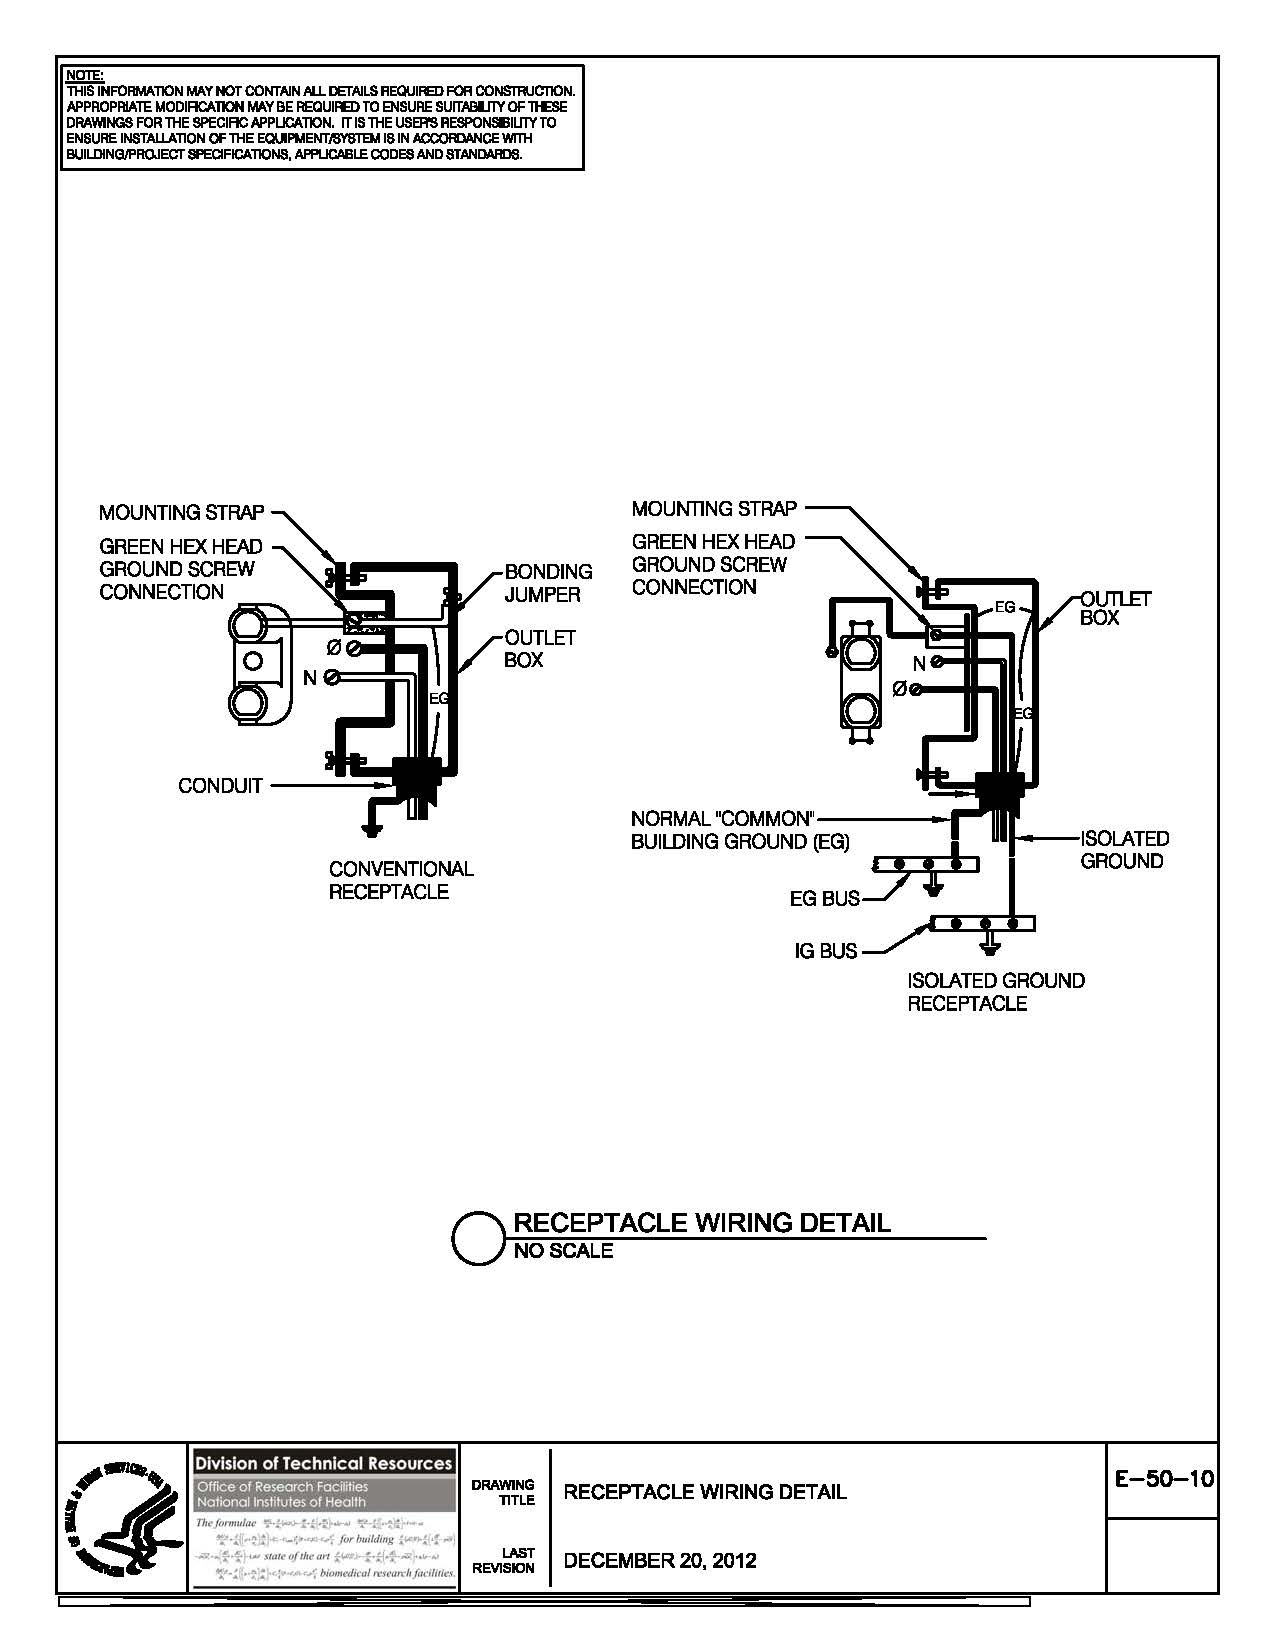 Nih Standard Cad Details Ac Receptacle Wiring Code Thumbnail Of E 50 10